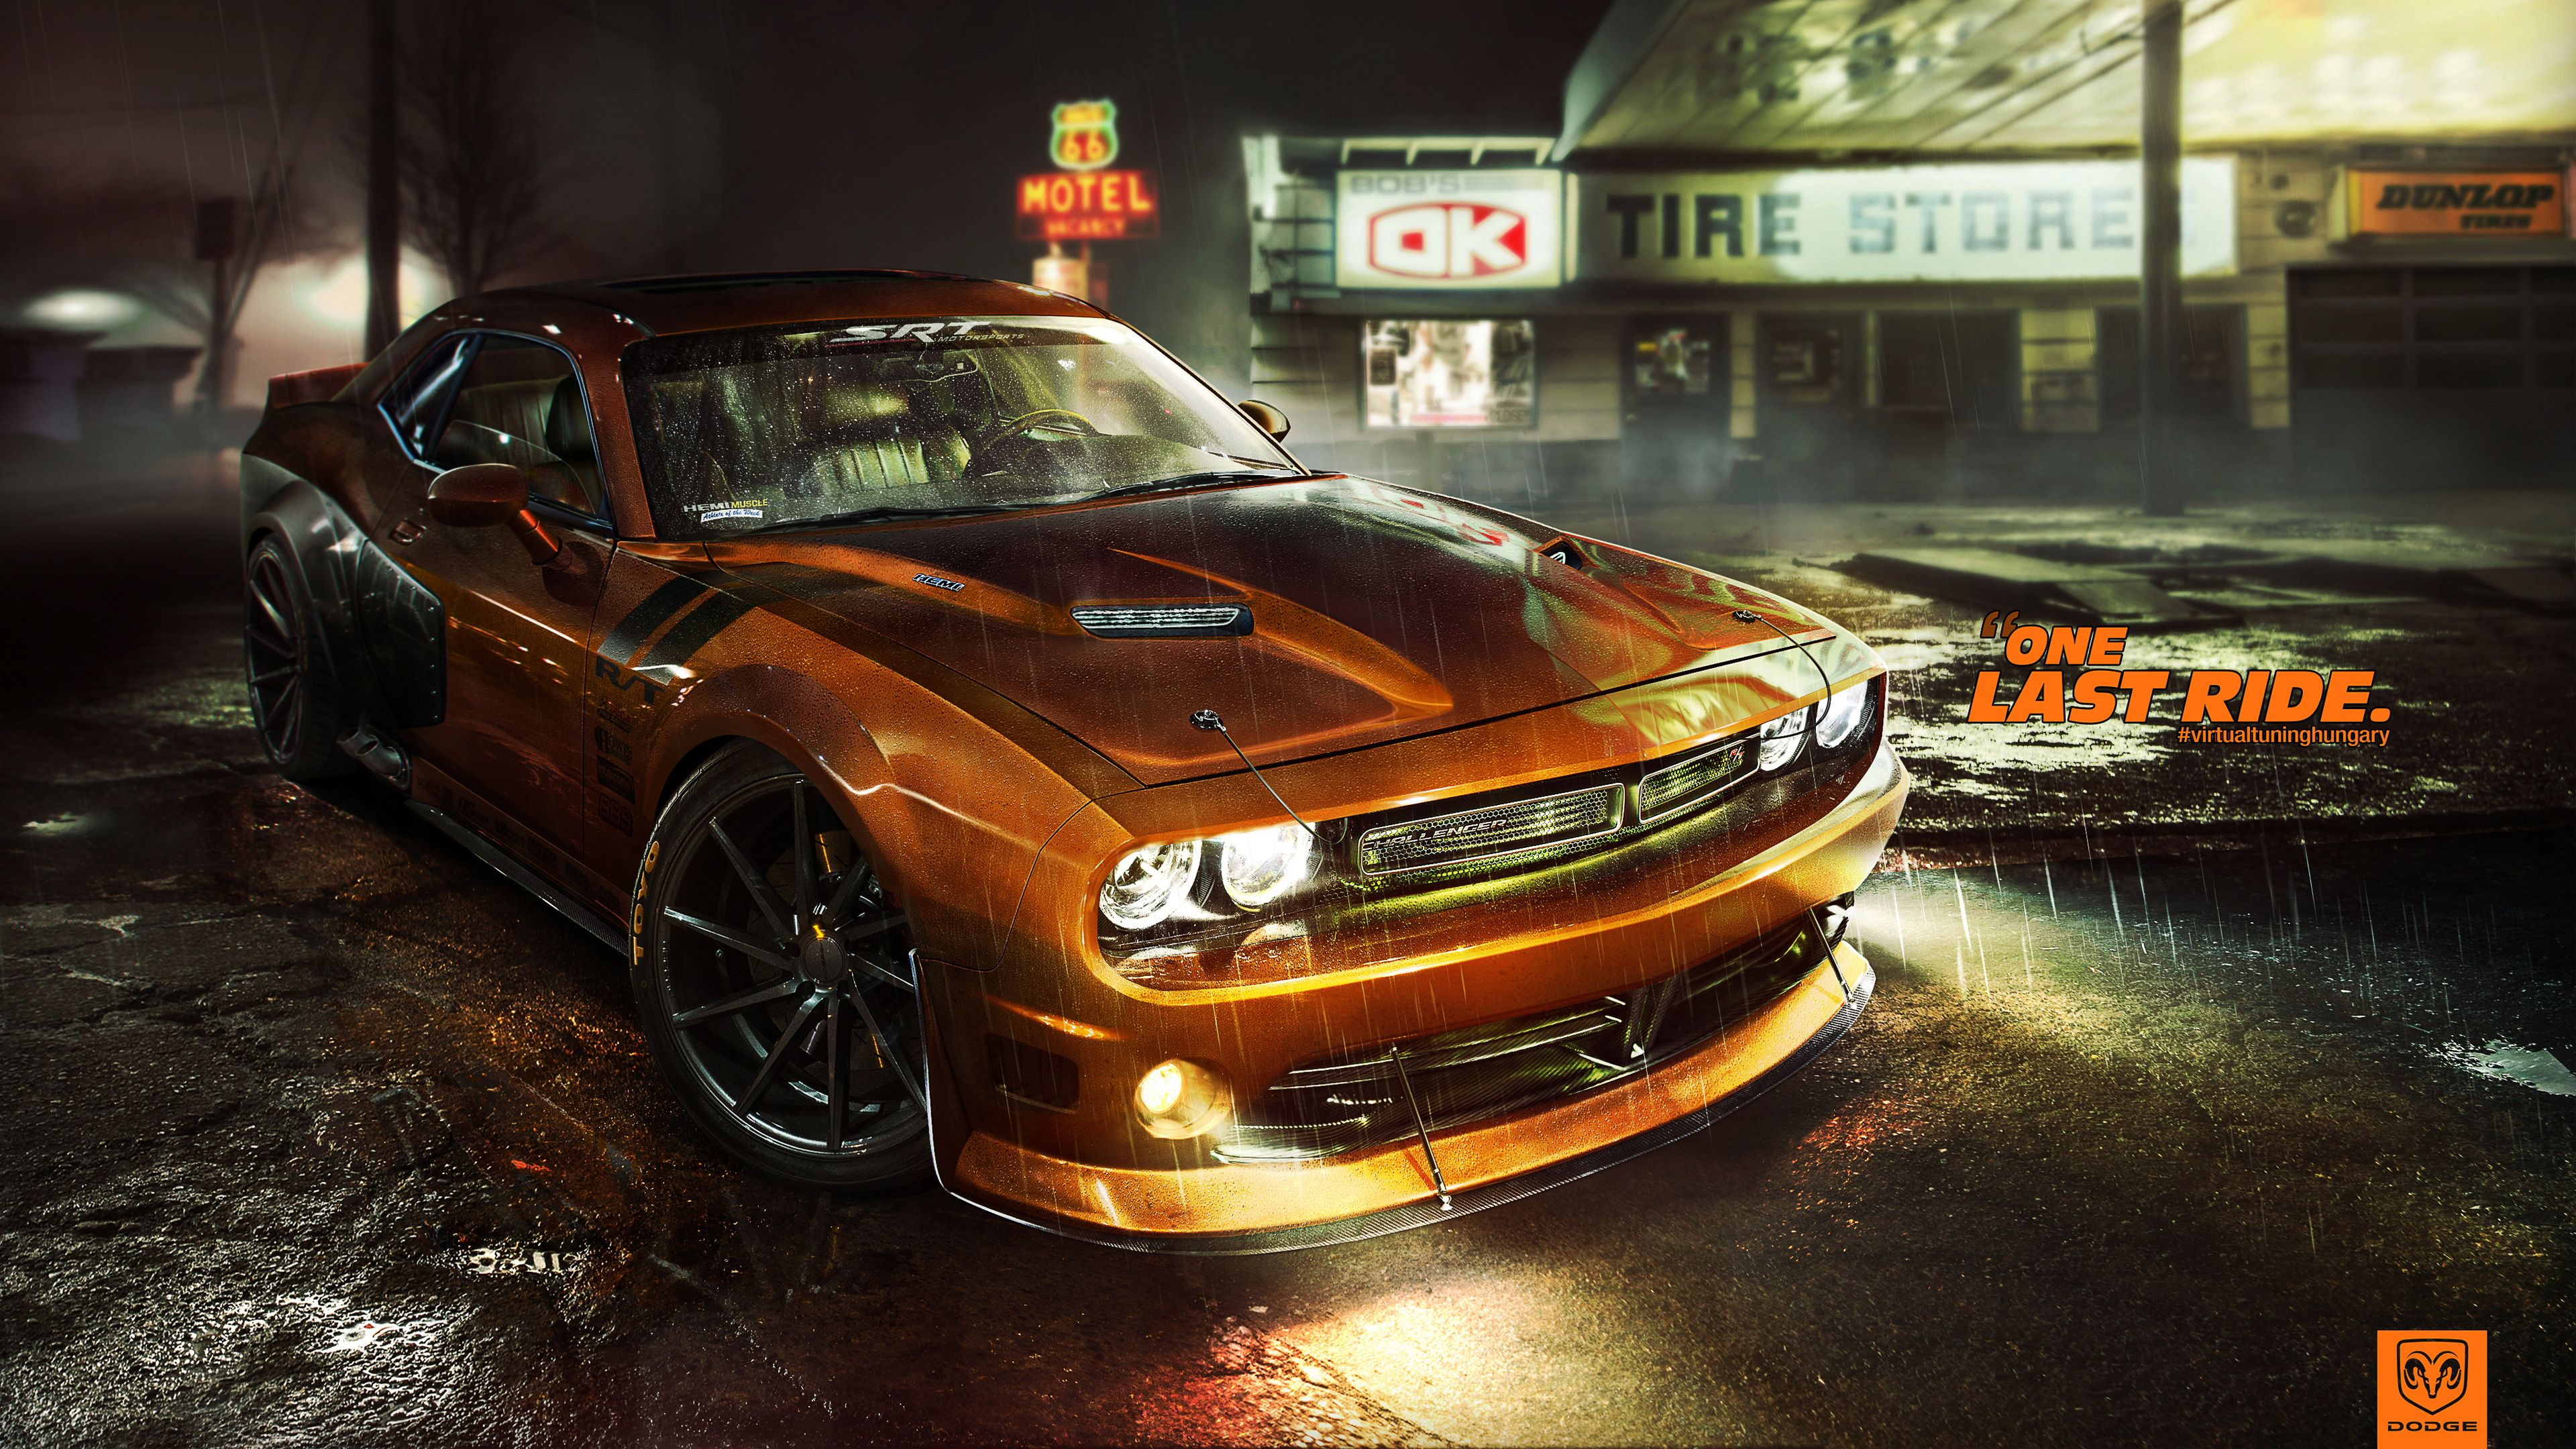 69 Best Free Dodge Wallpapers Wallpaperaccess